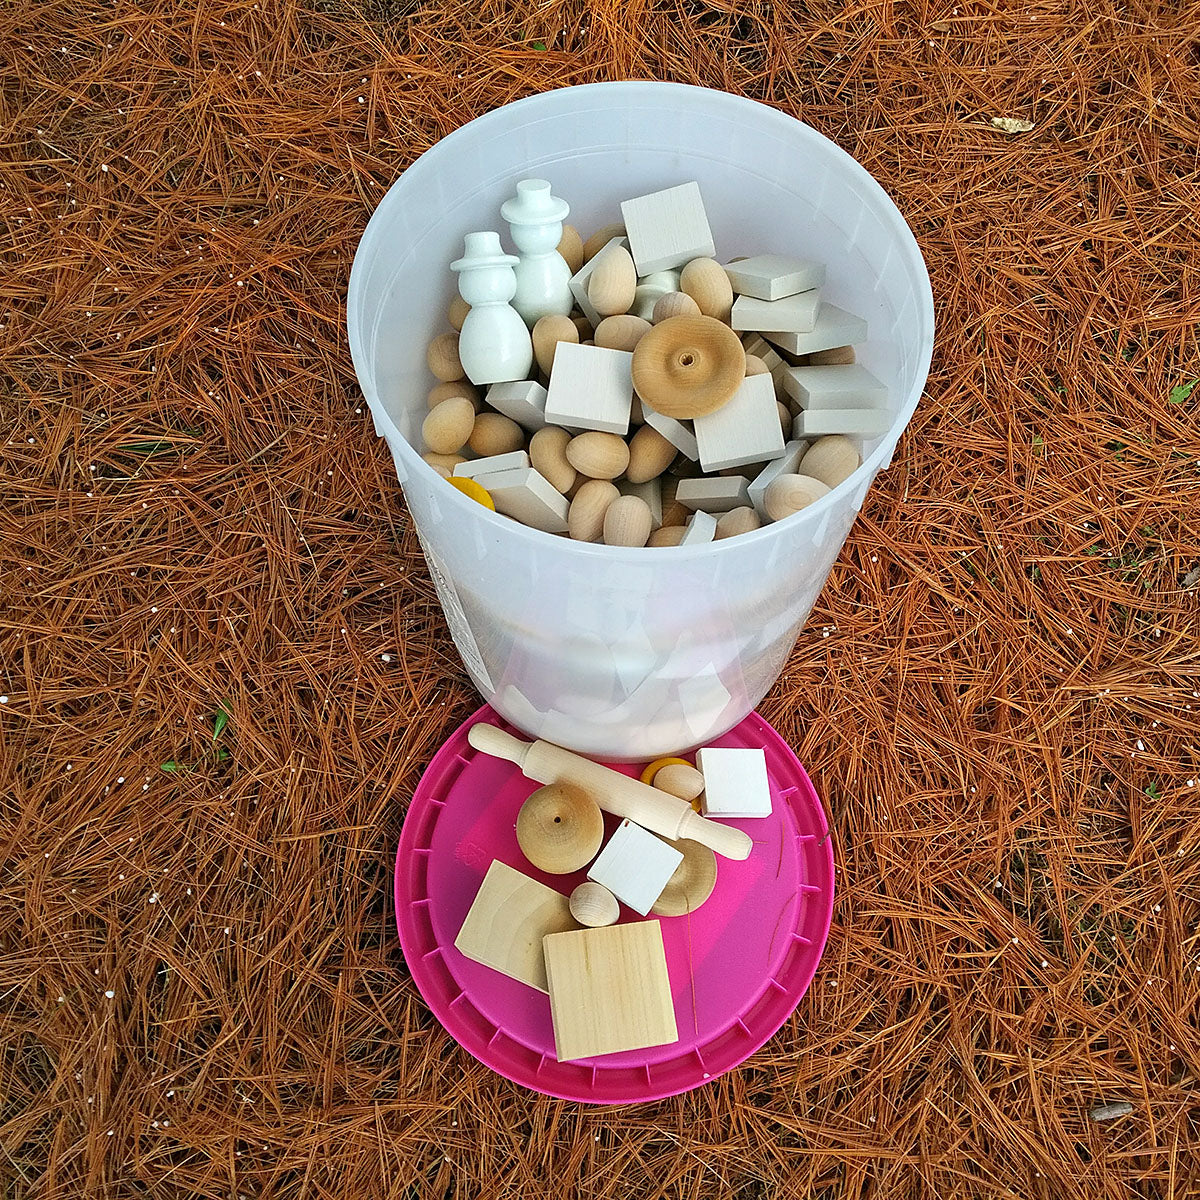 Bucket of Loose Parts